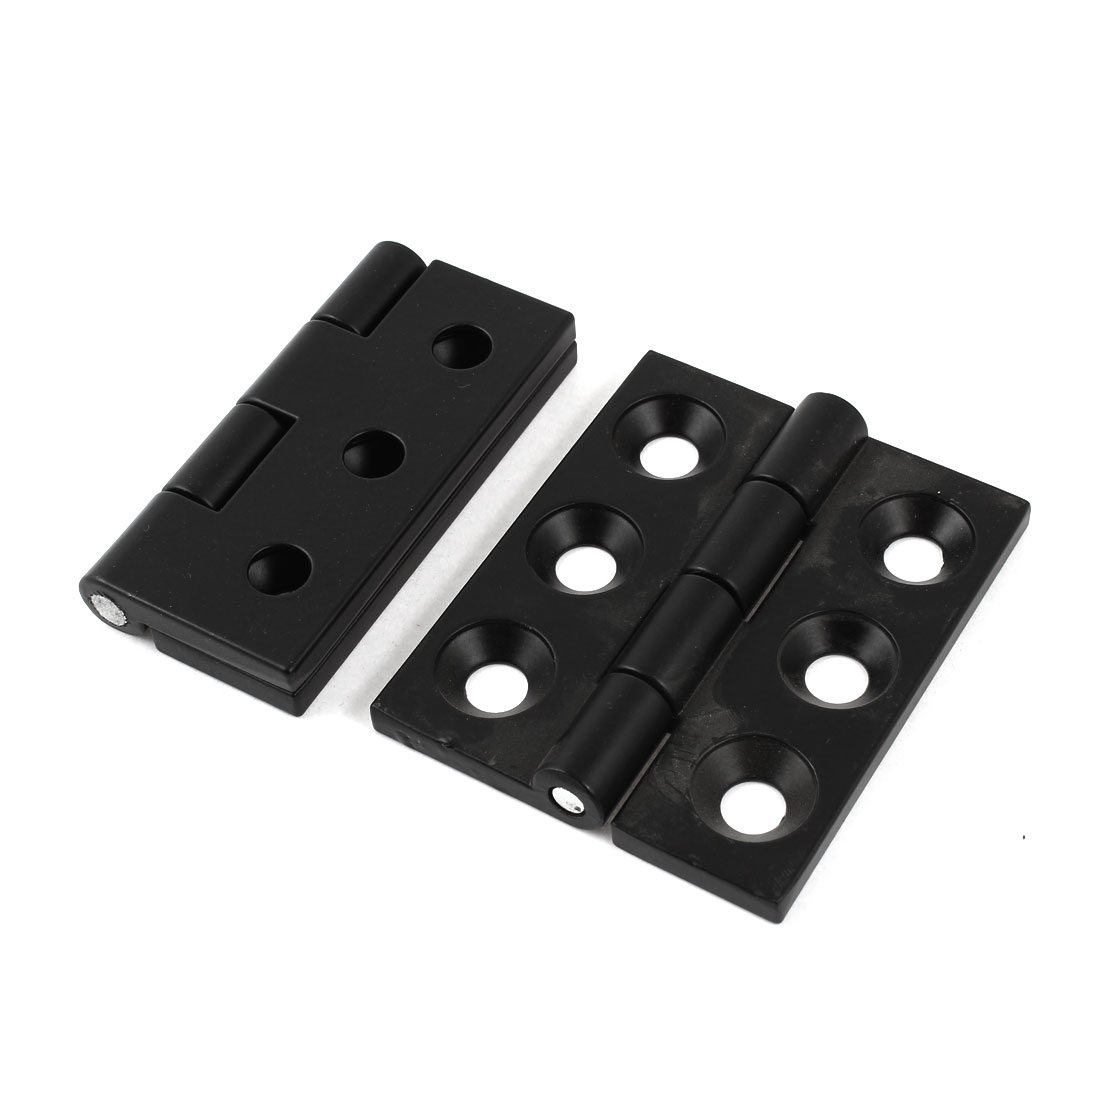 2Pcs Metal Home Furniture Hardware Door Drawer Hinge Black 80mm Long